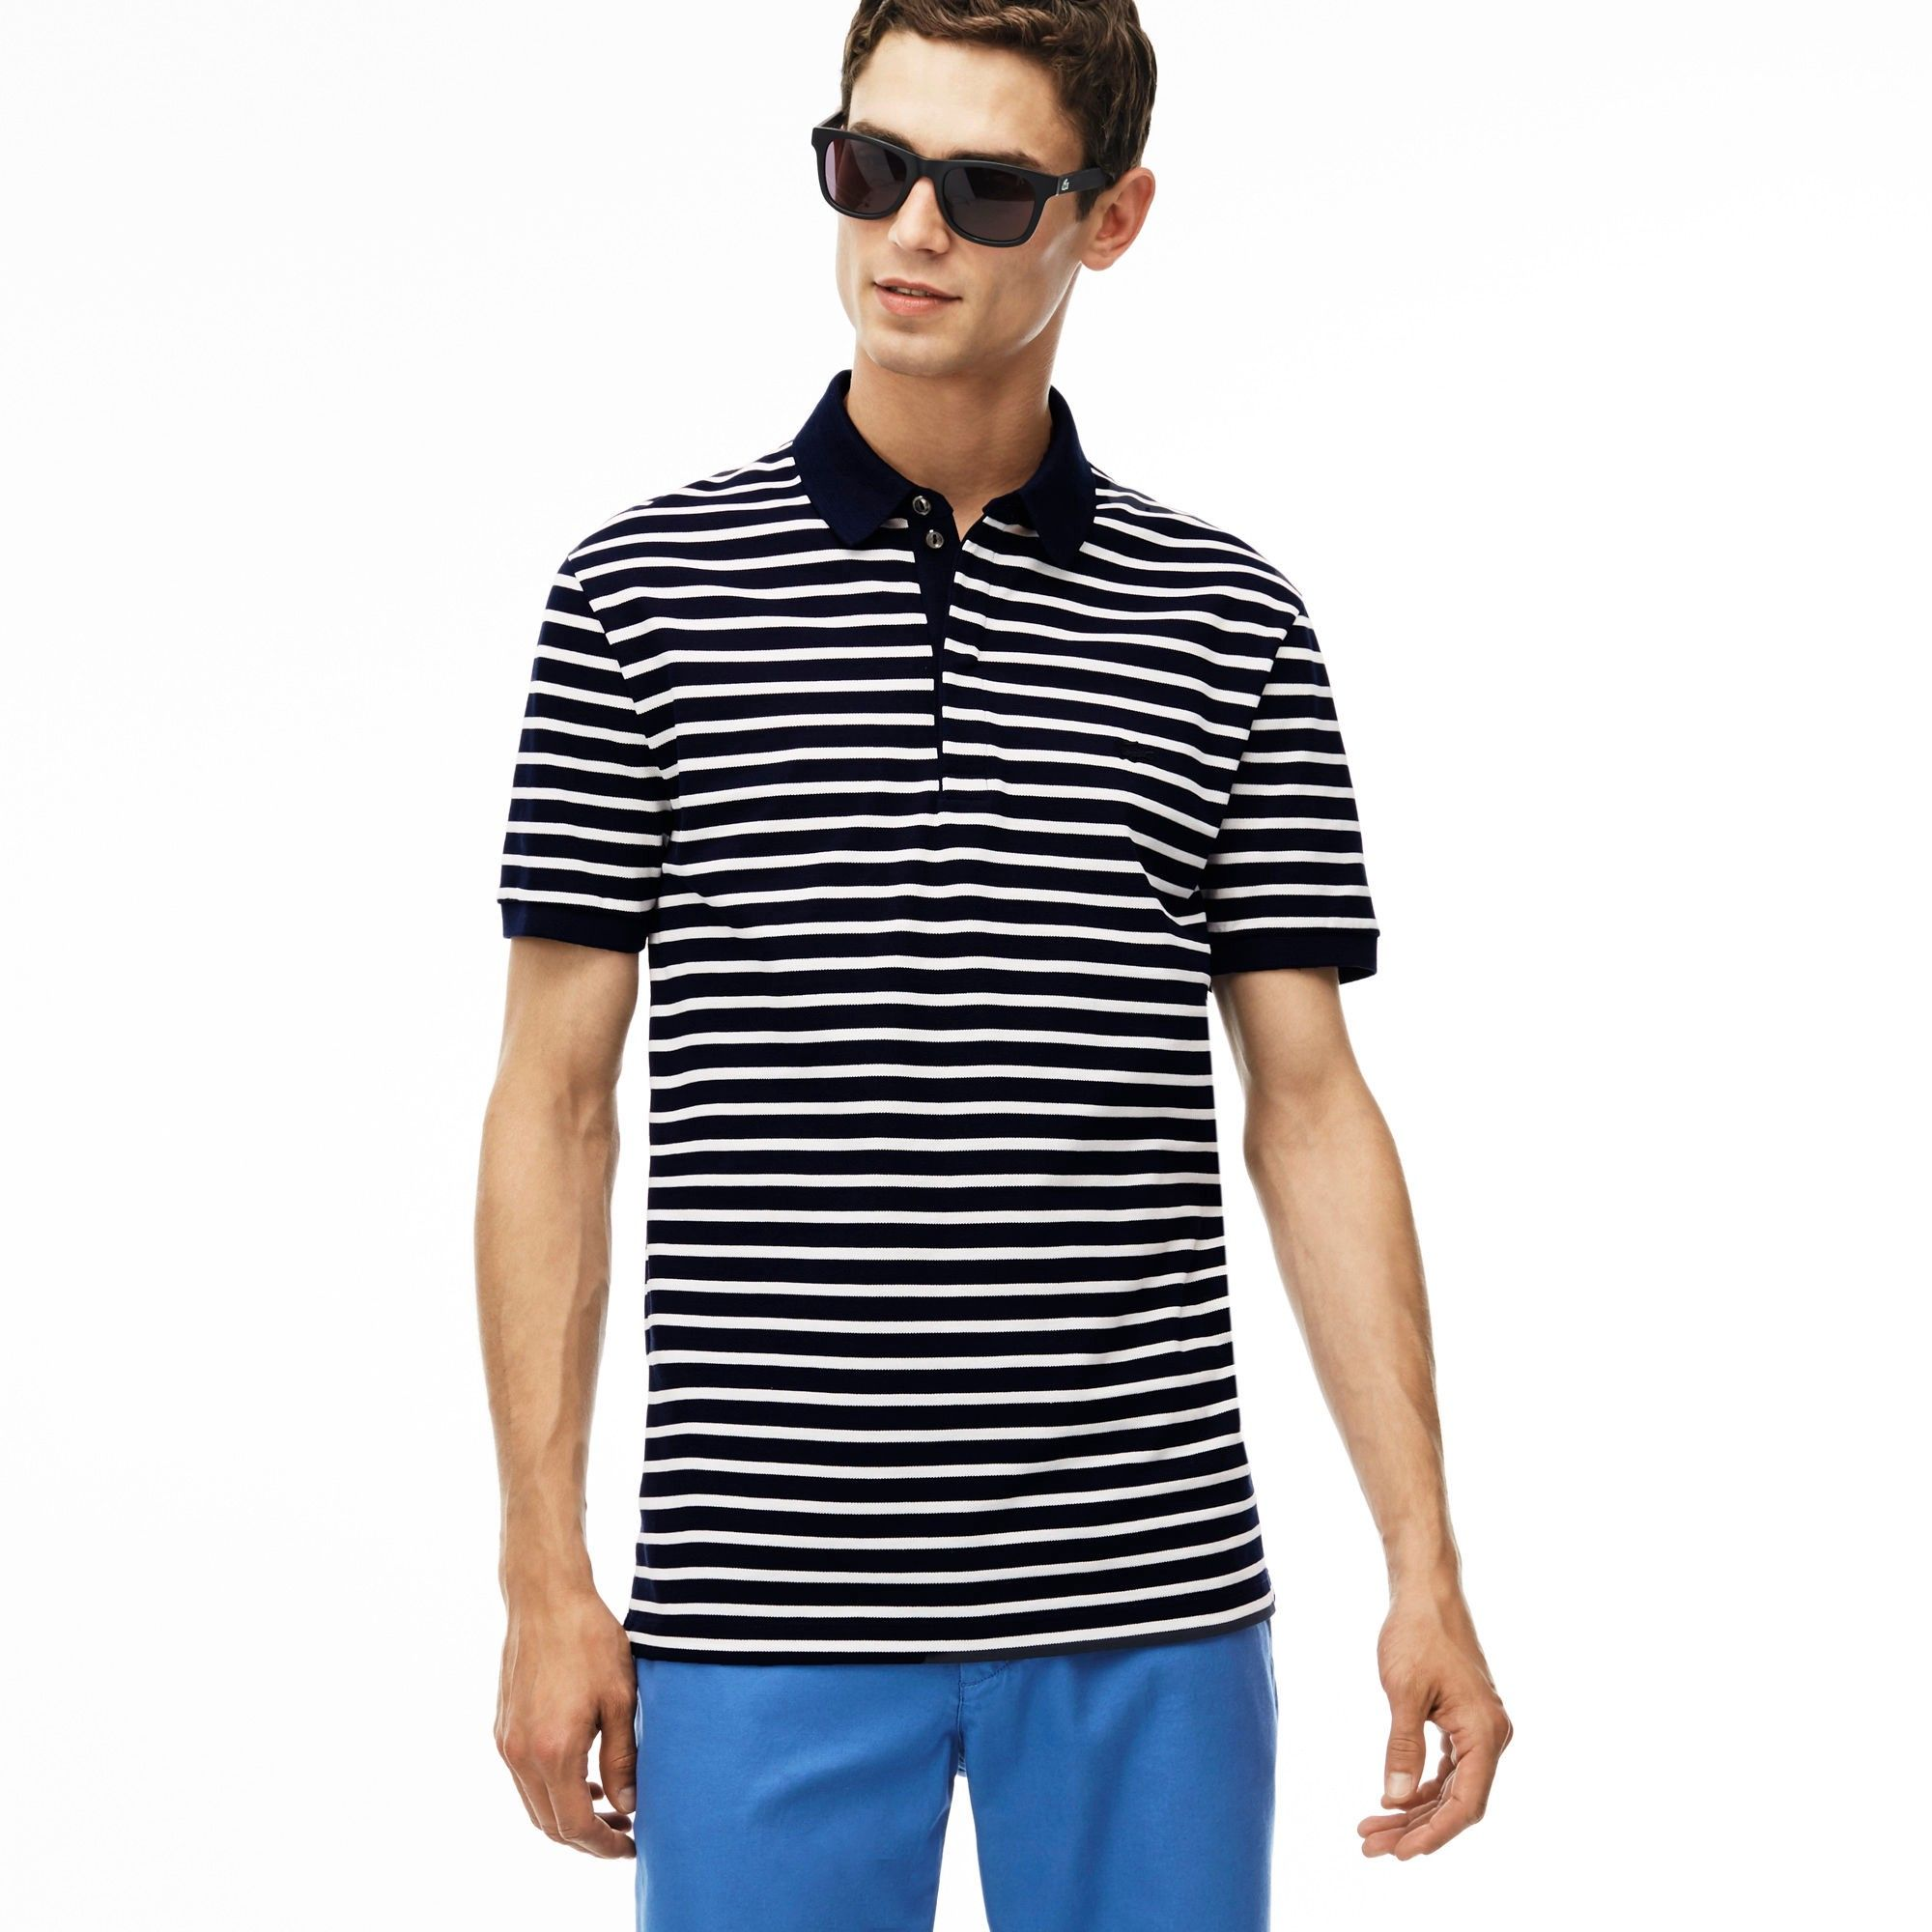 8c09a5ee01e985 LACOSTE Men S Slim Fit Striped Cotton Petit Piqué Polo Shirt - Navy Blue Cake  Flour Whit.  lacoste  cloth  all